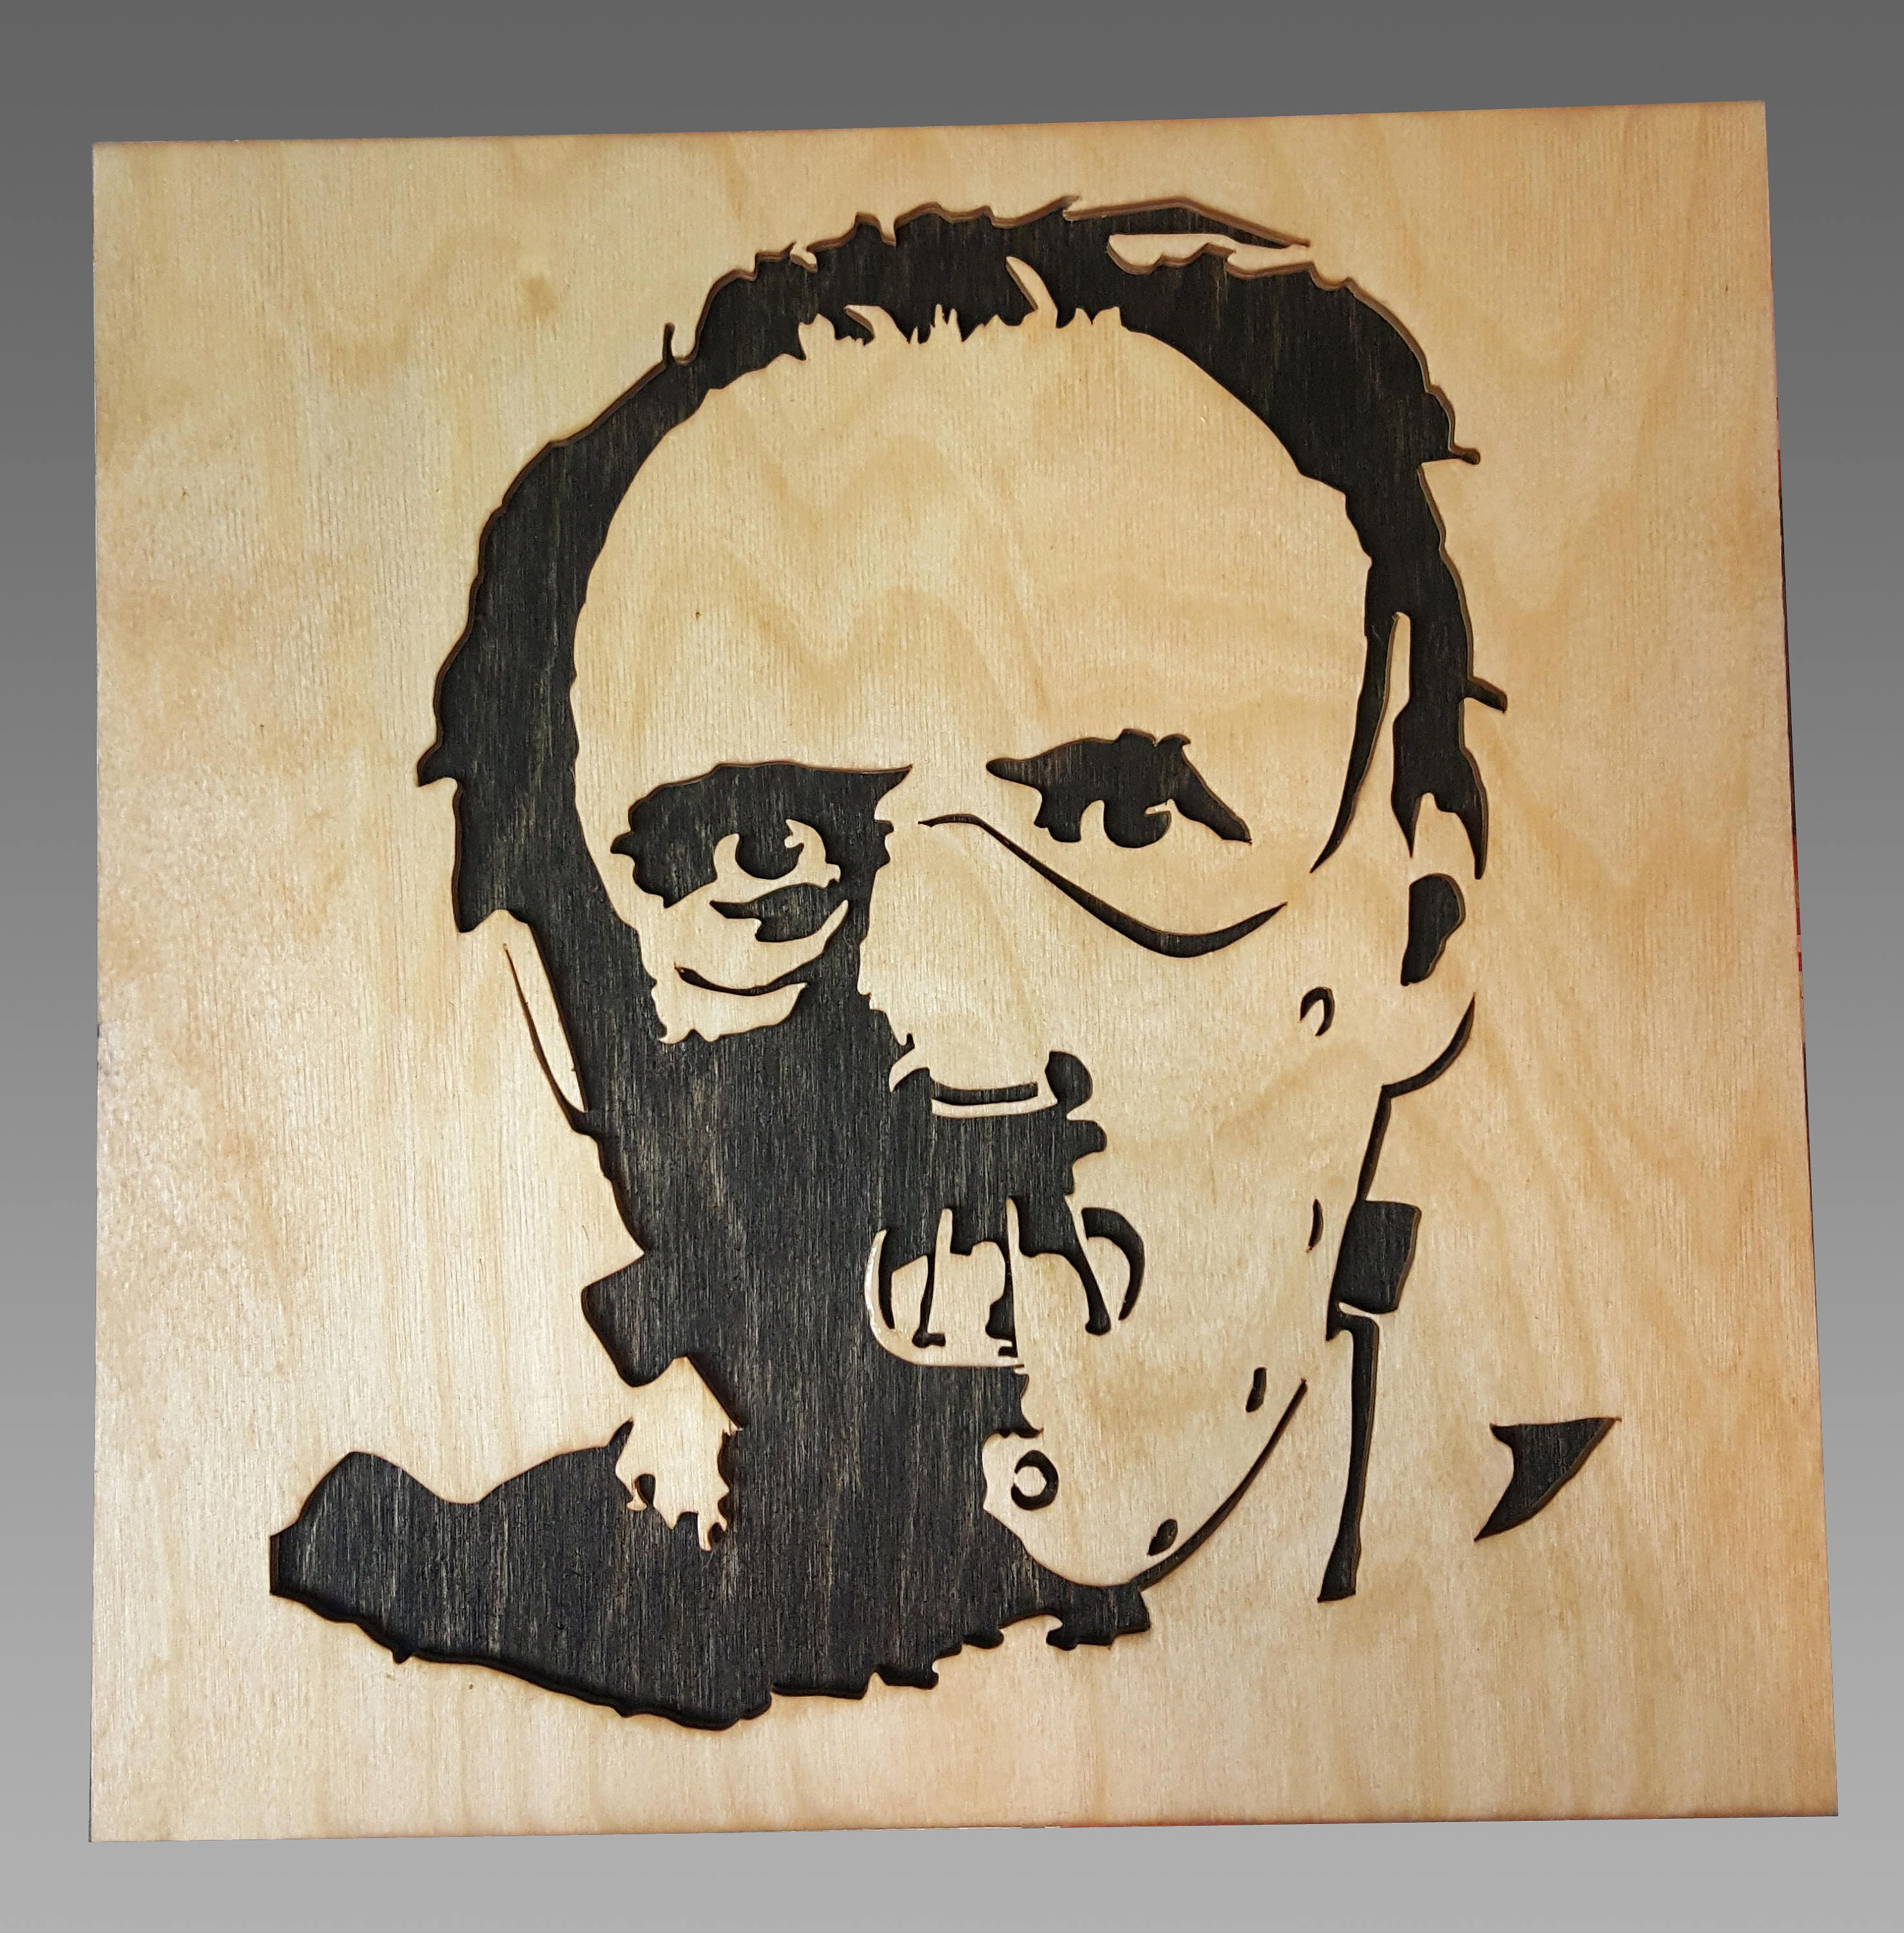 The Silence of the Lamb Hannibal Lecter Scroll Saw Art Wall | Etsy